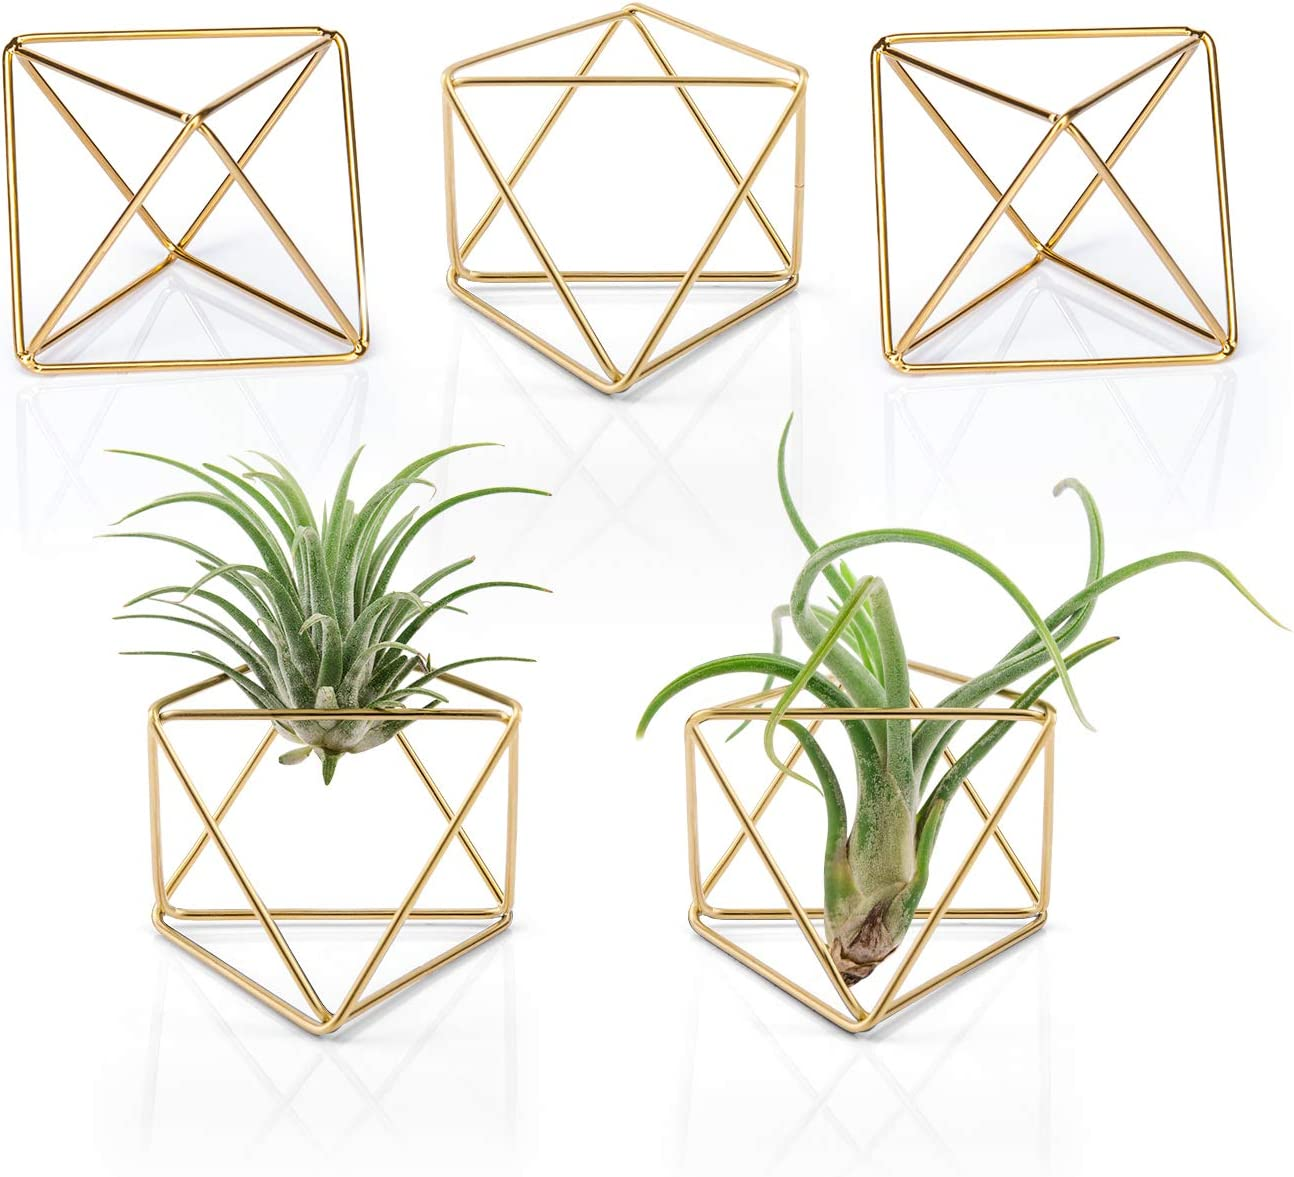 Mkono 5 Packs Air Plant Holder Modern Geometric Planter Tillandsia Container Metal Airplants Display Stand Mini Tabletop Himmeli Decor with Each Side 2.6 Long for Home, Office and Wedding, Gold